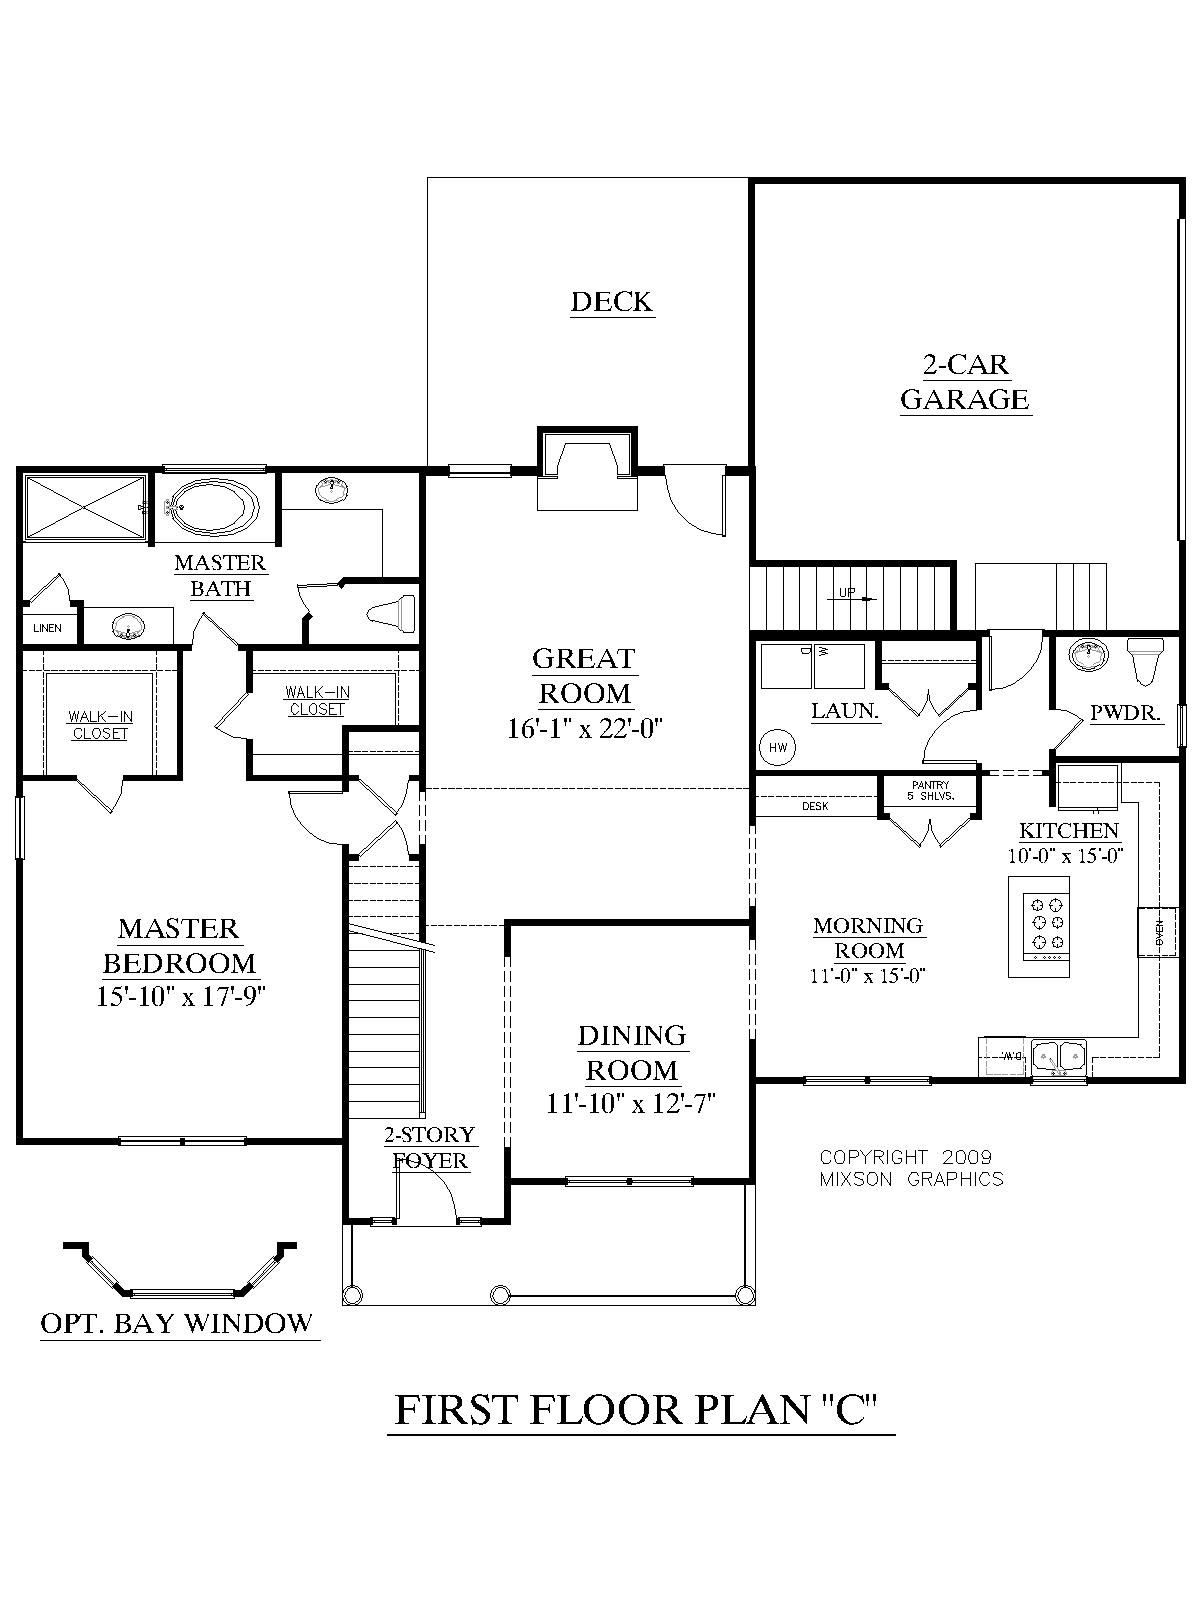 4 Bedroom Layout Design Of House Plan 2675 C Longcreek C First Floor Traditional 2